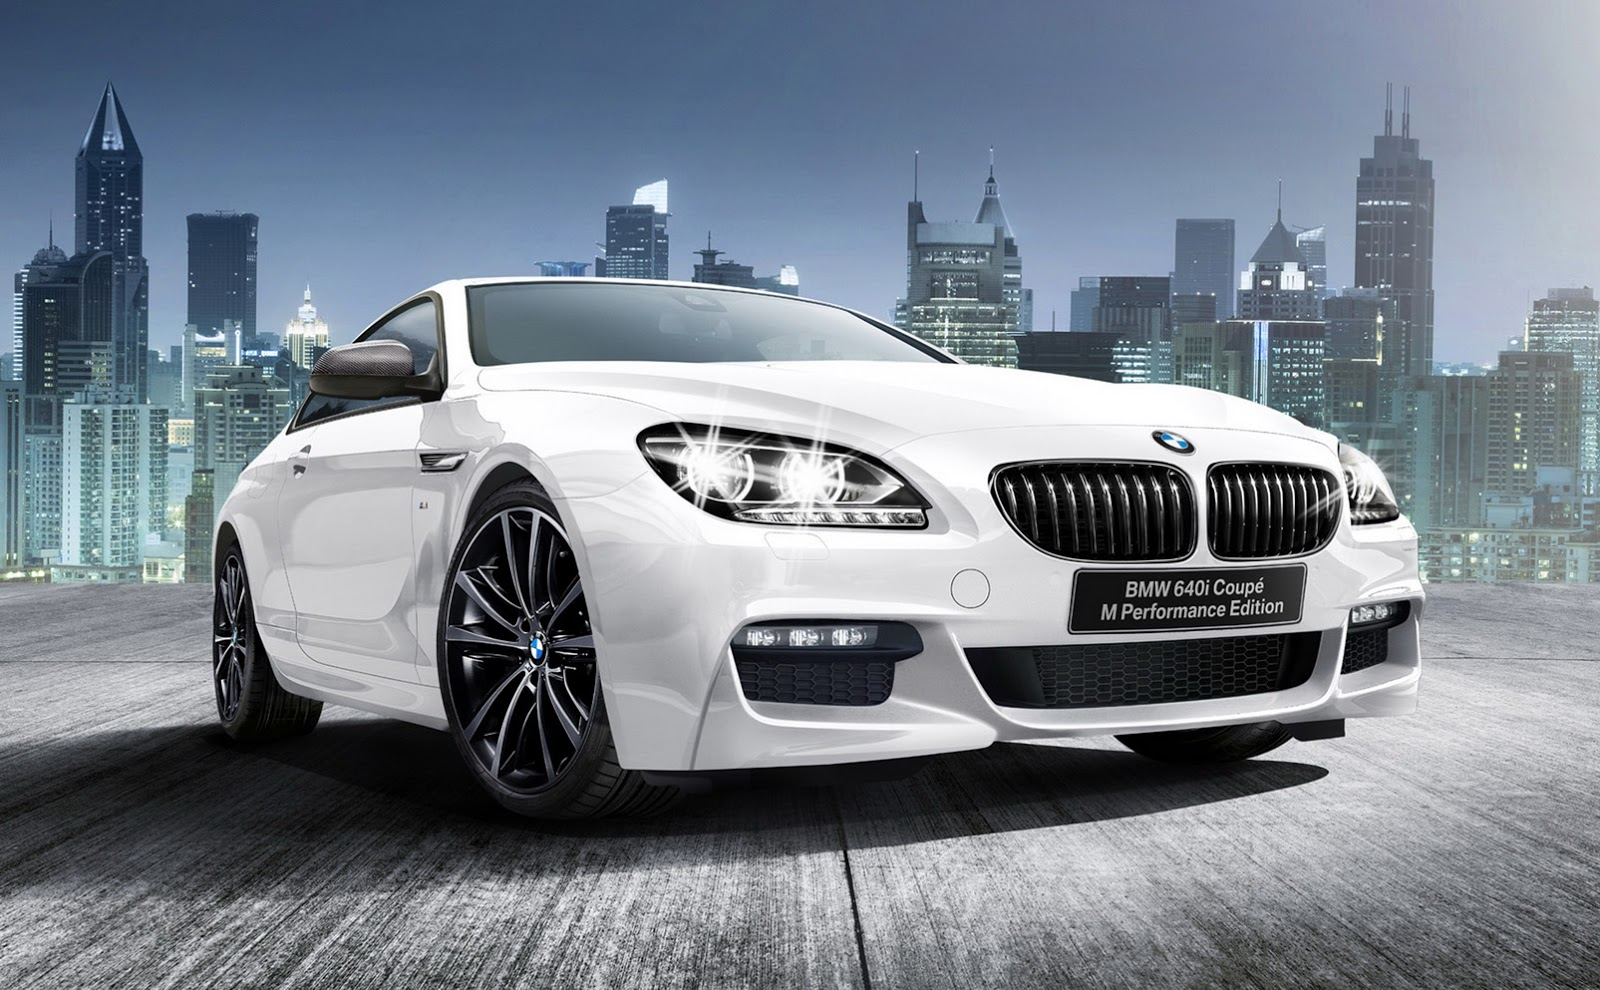 Only 10 Bmw 640i Coupe M Performance Editions Will Be Made